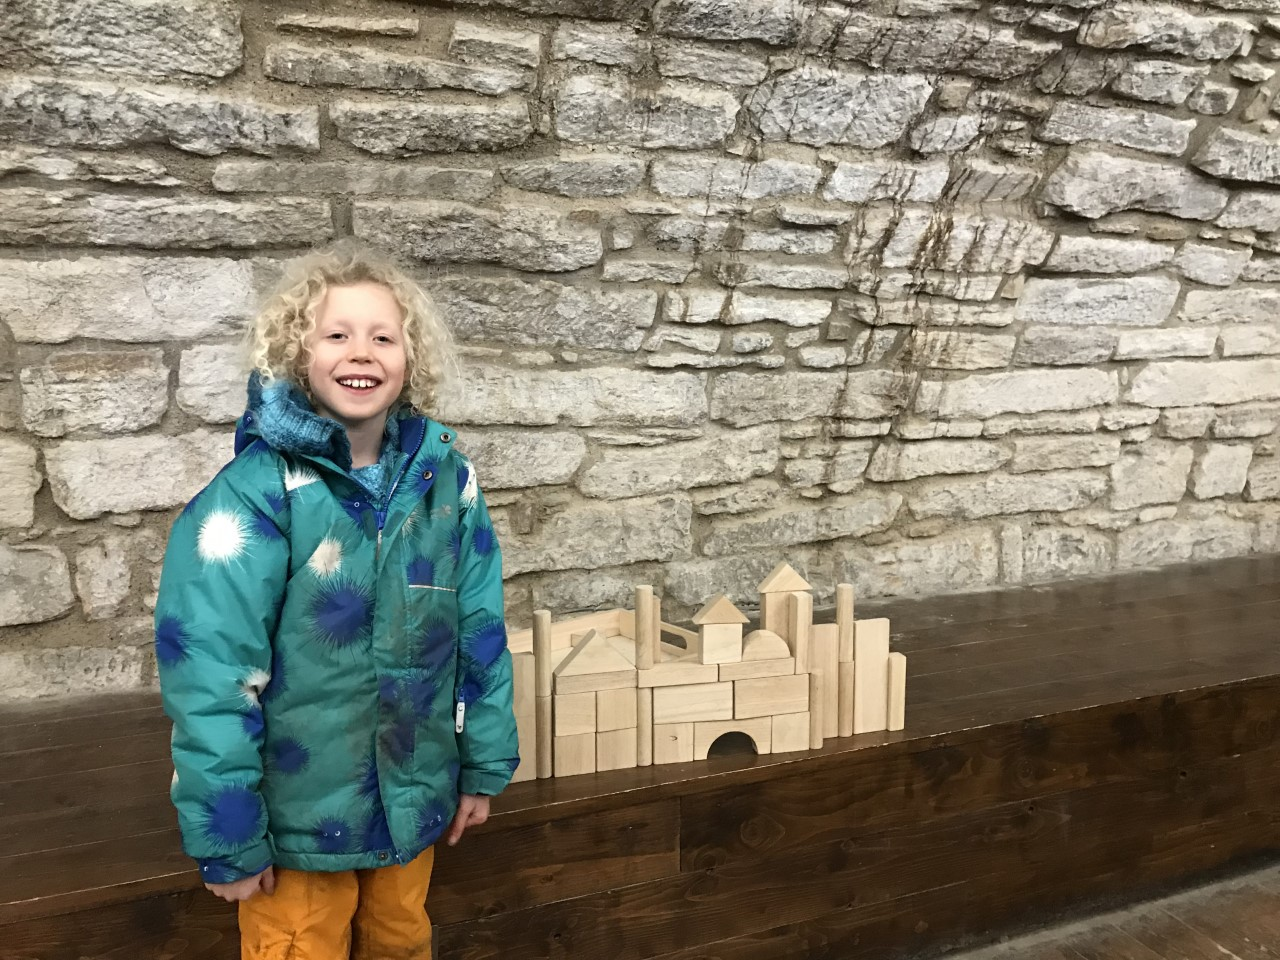 boy standing beside wooden block castle